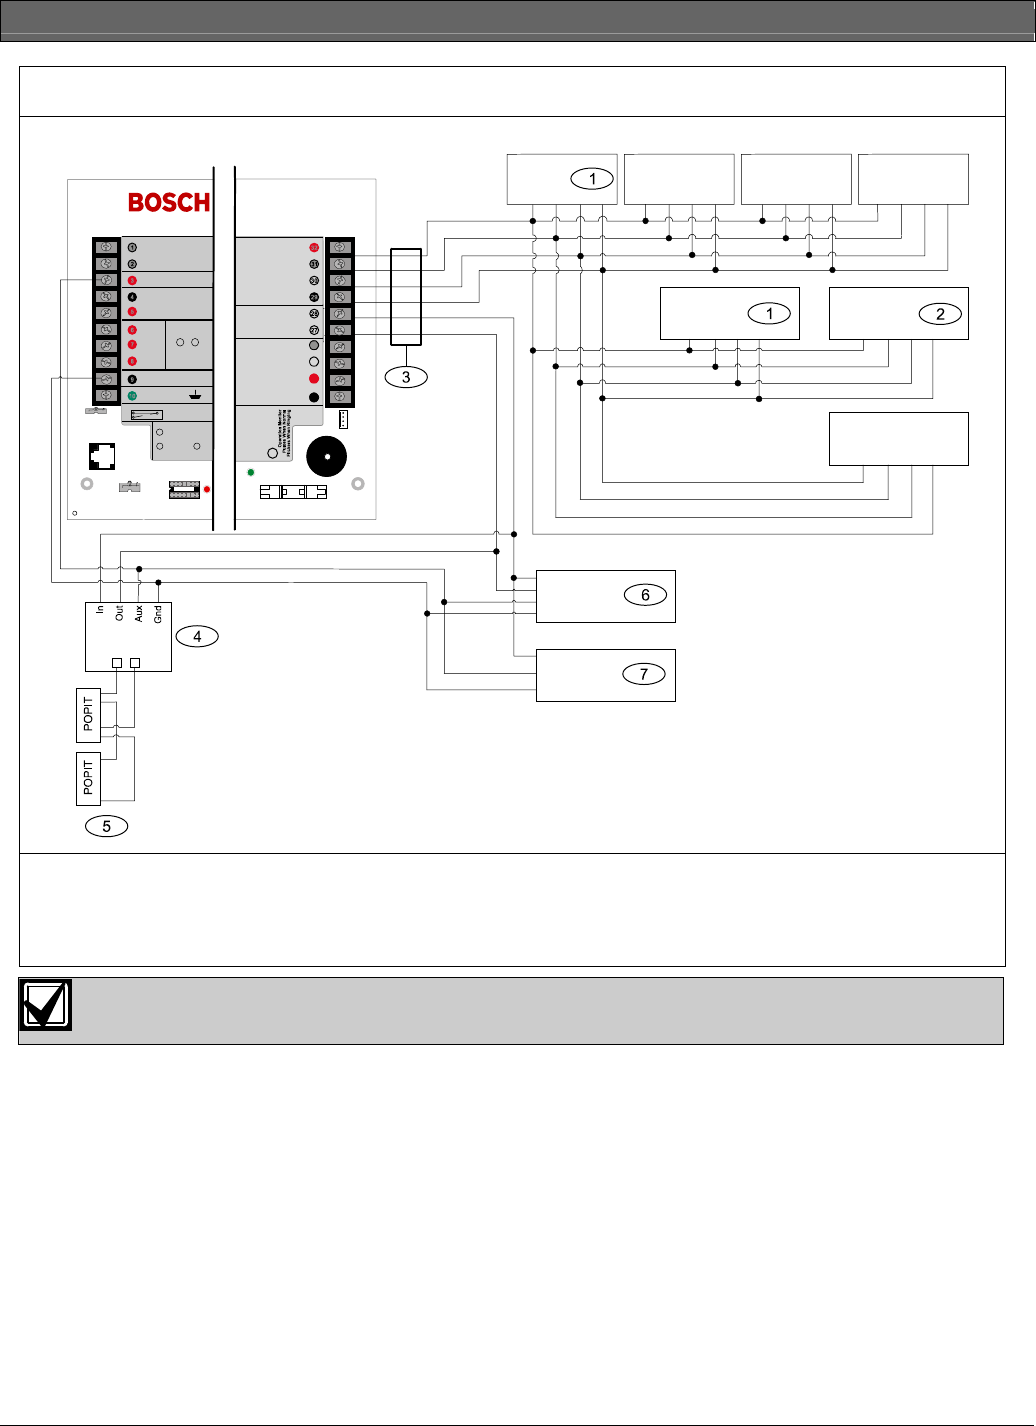 Page 69 of bosch appliances home security system d9412gv2 user guide d9412gv2d7412gv2 operation and installation guide appendix a system wiring diagrams issue a cheapraybanclubmaster Choice Image